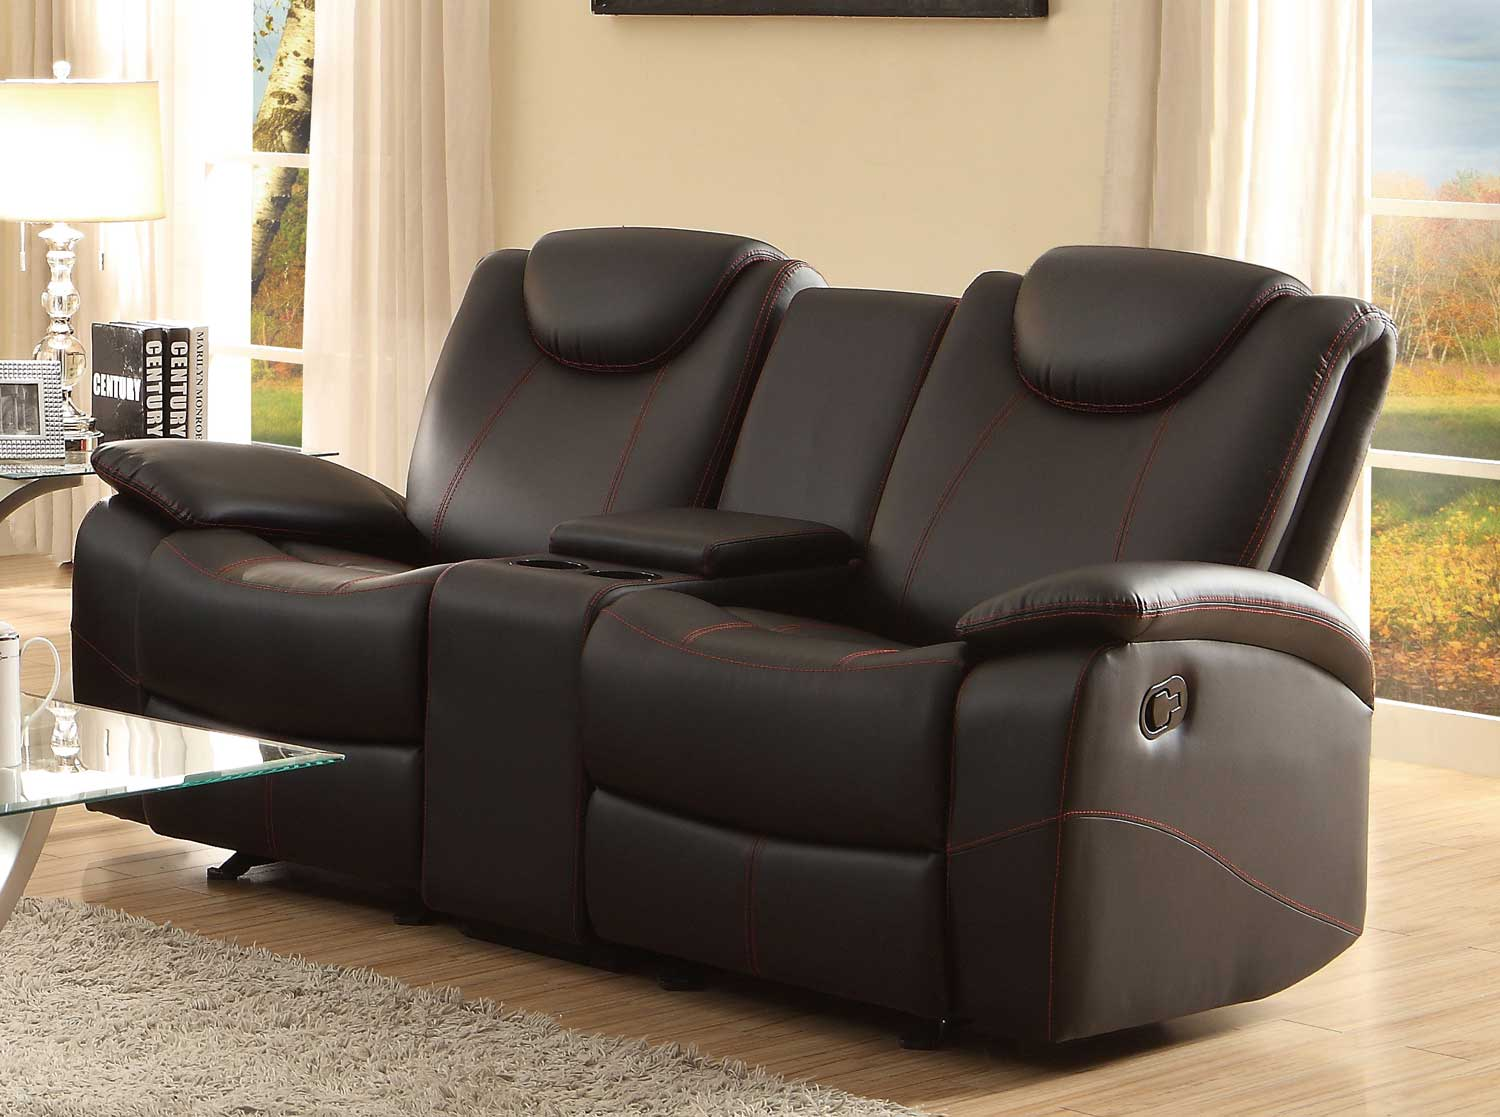 Homelegance Talbot Double Glider Reclining Love Seat With Center Console Black Bonded Leather